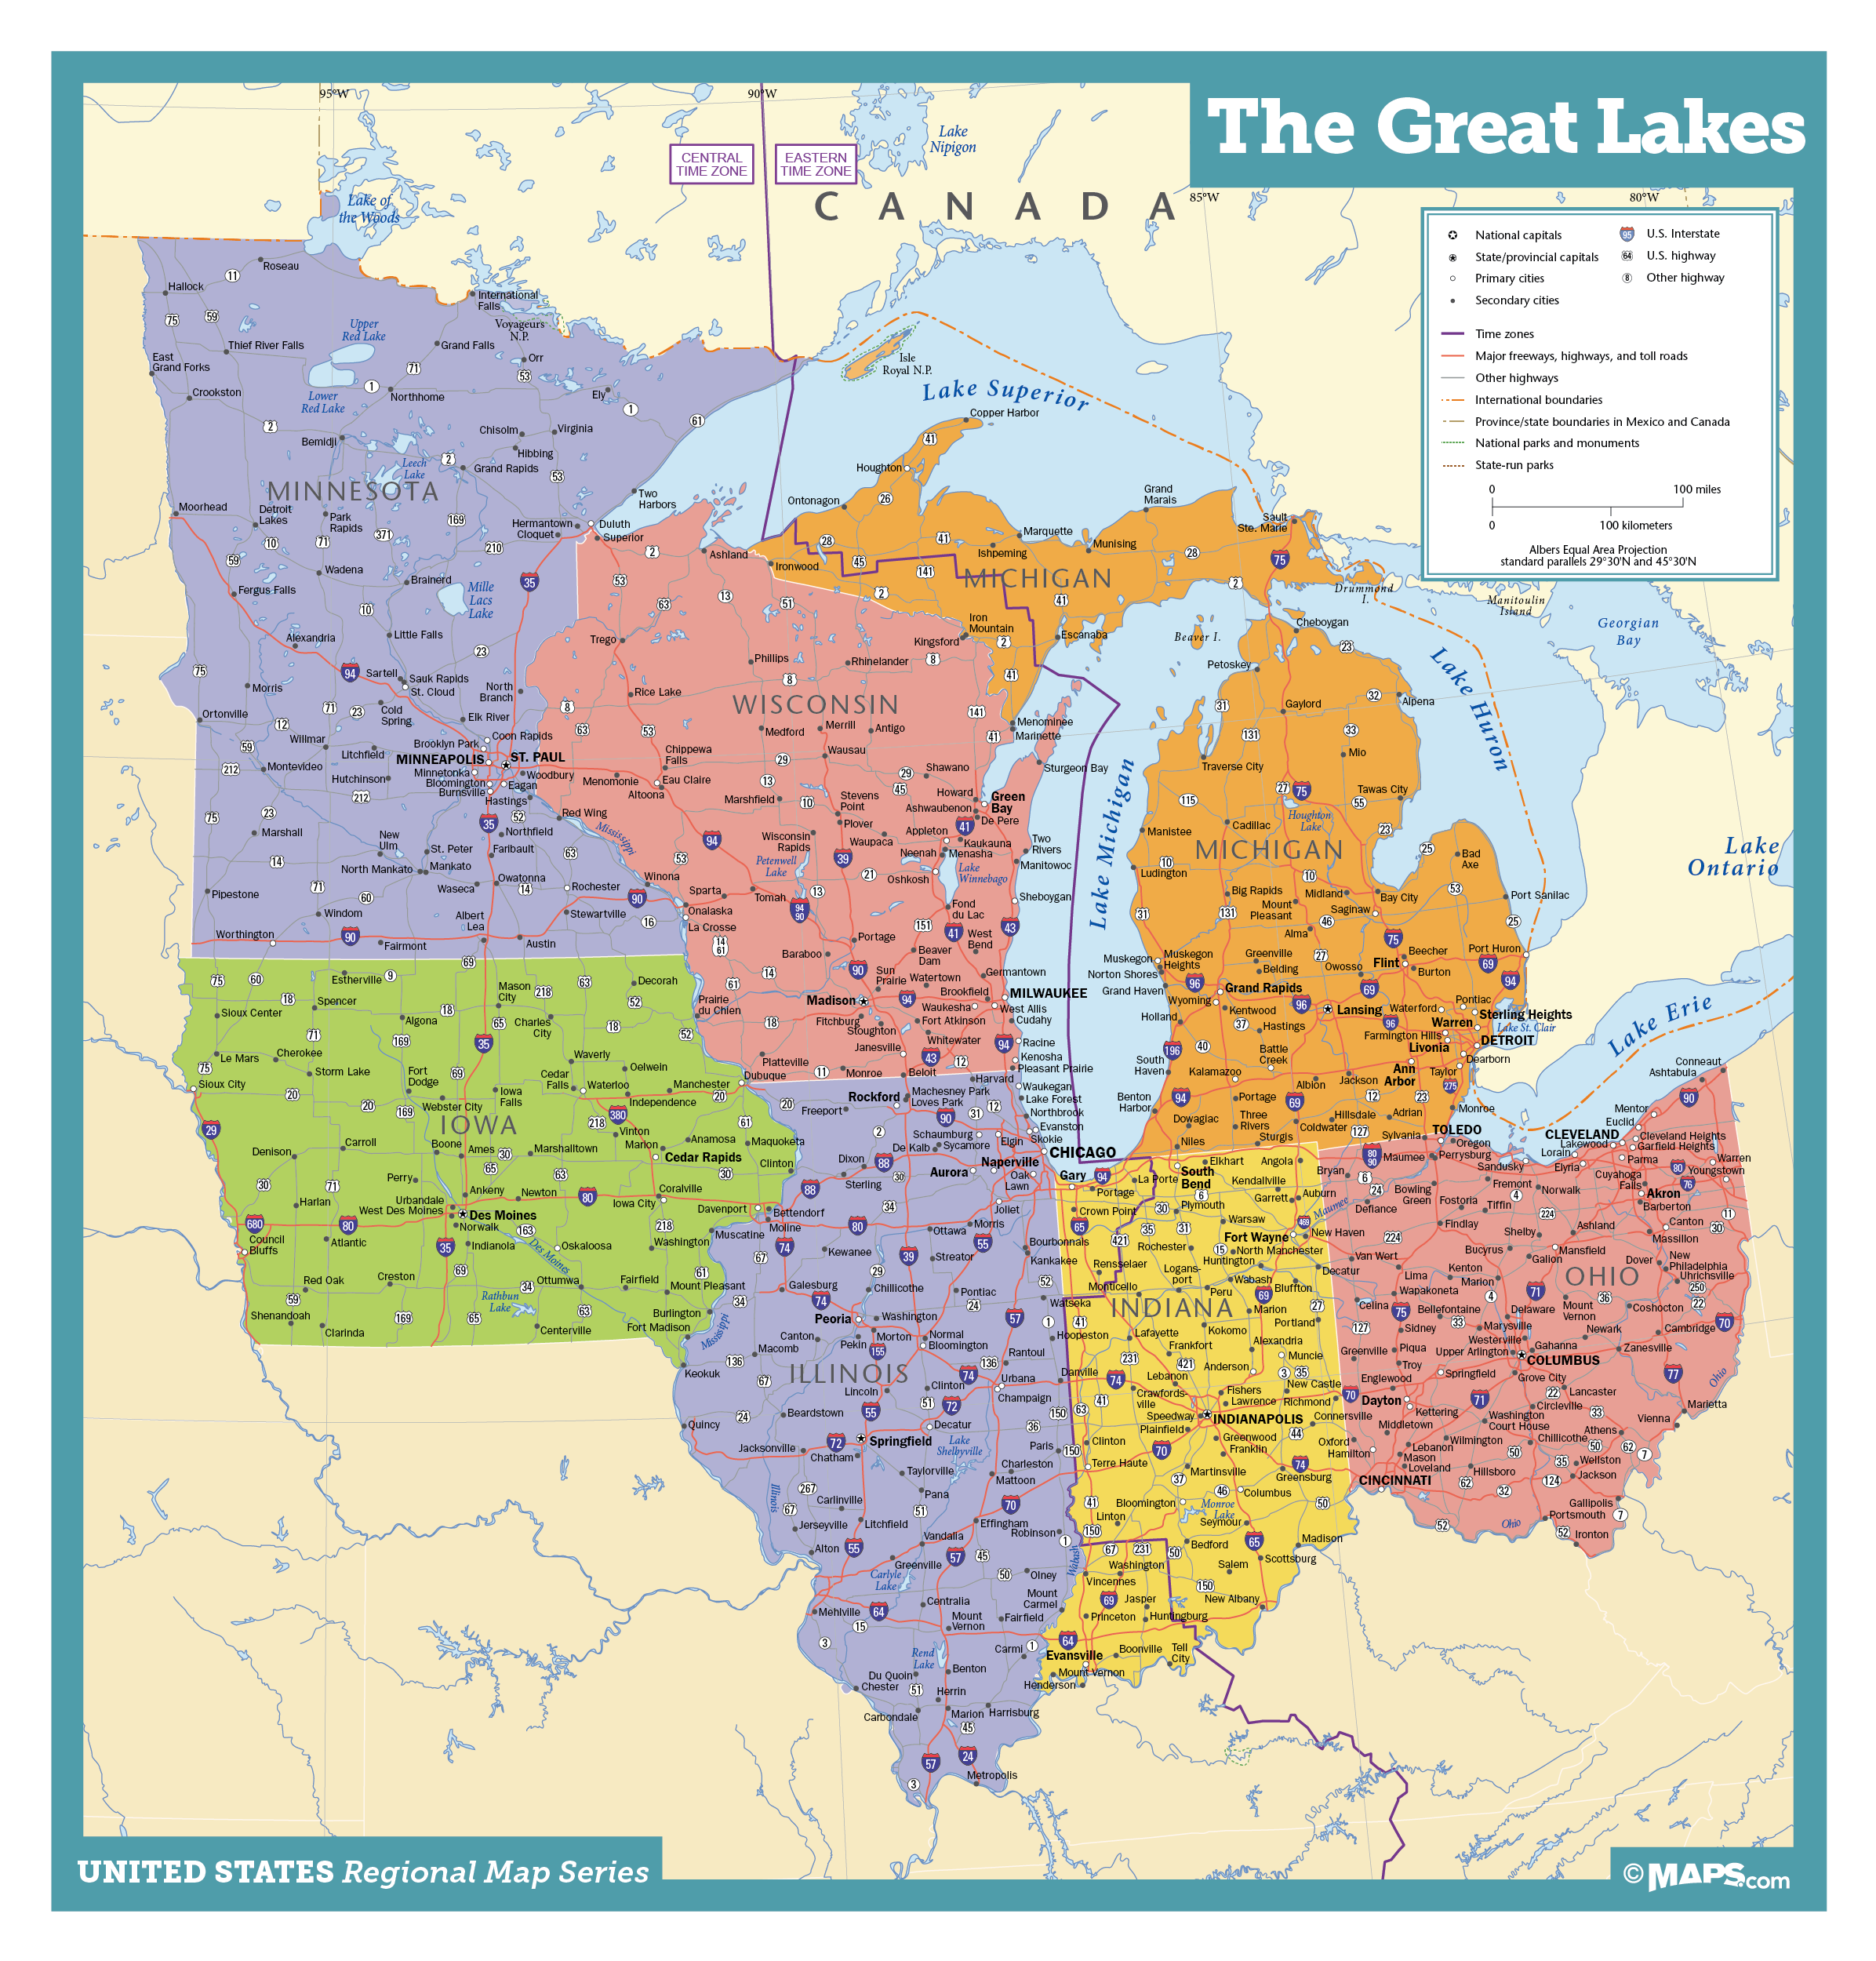 Great Lakes States Map Great Lakes States Wall Map | Maps.com.com